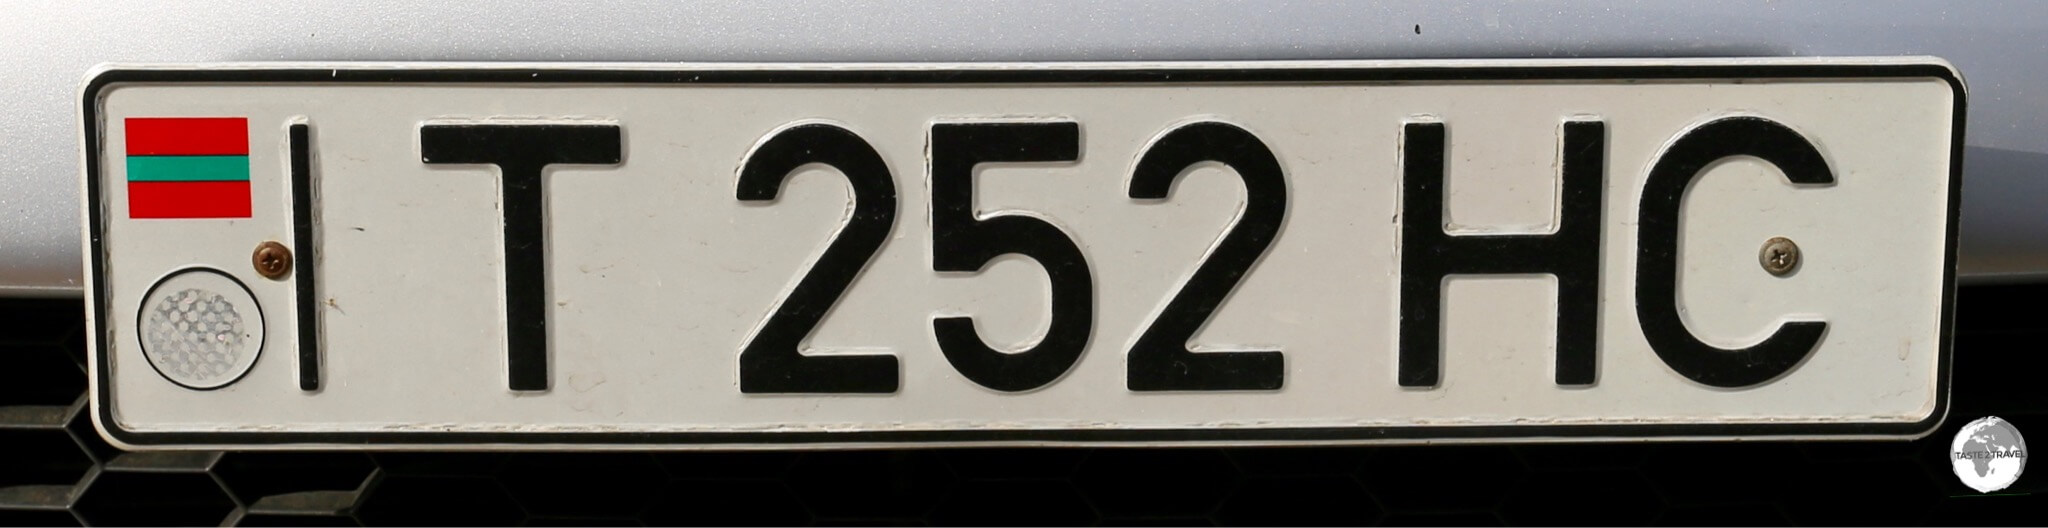 The license plate of Transnistria features the flag and also indicates which district the car is from, with 'T' representing Tiraspol.